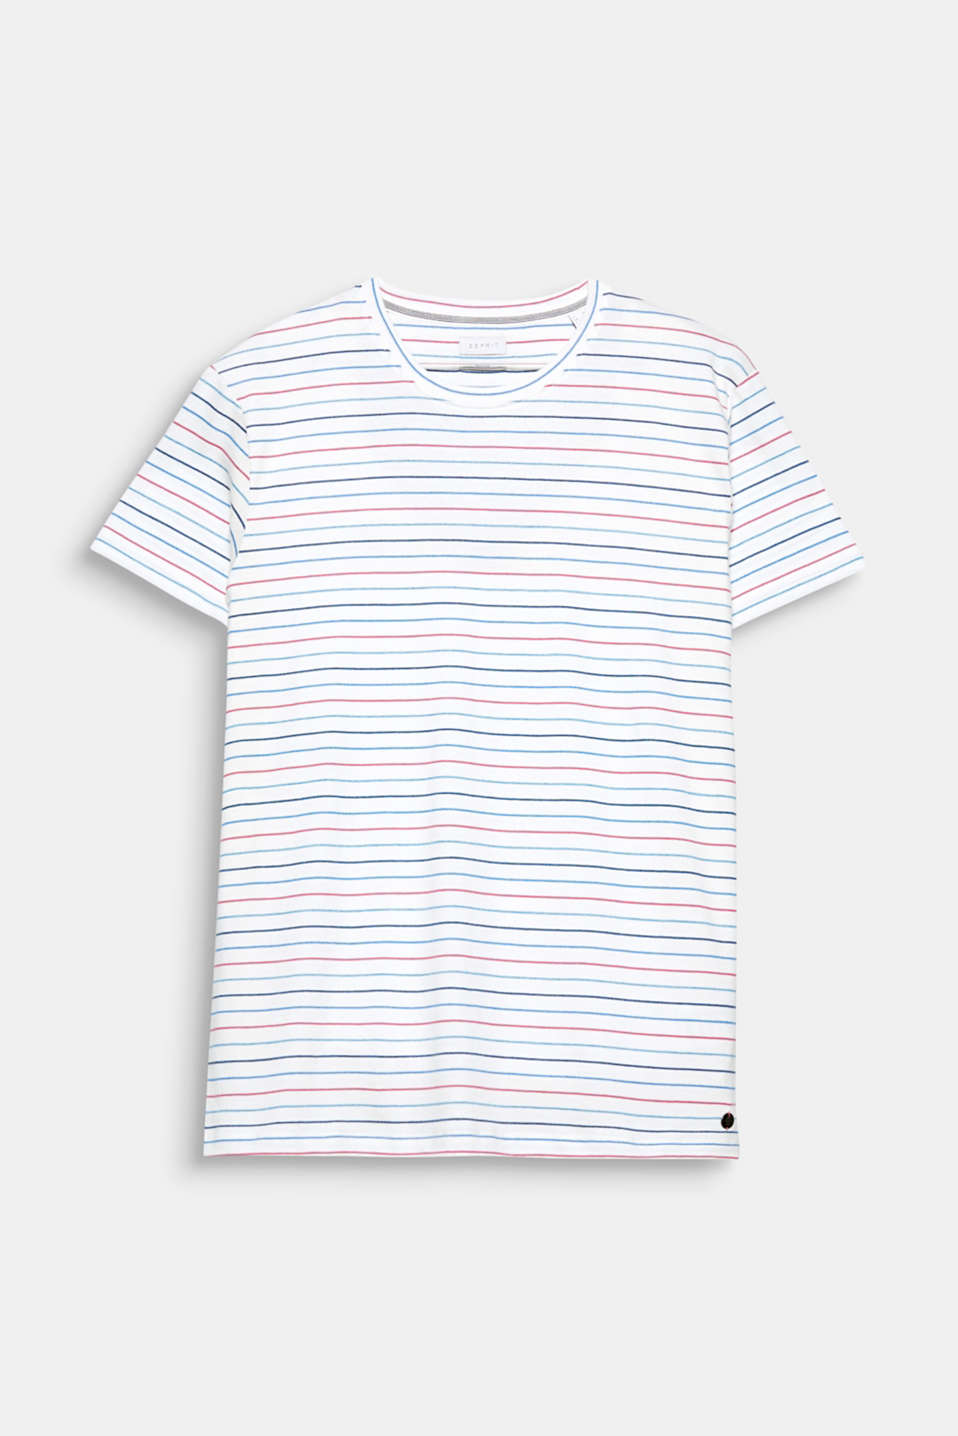 A sporty fashion basic: T-shirt with fine stripes, made of 100% cotton.